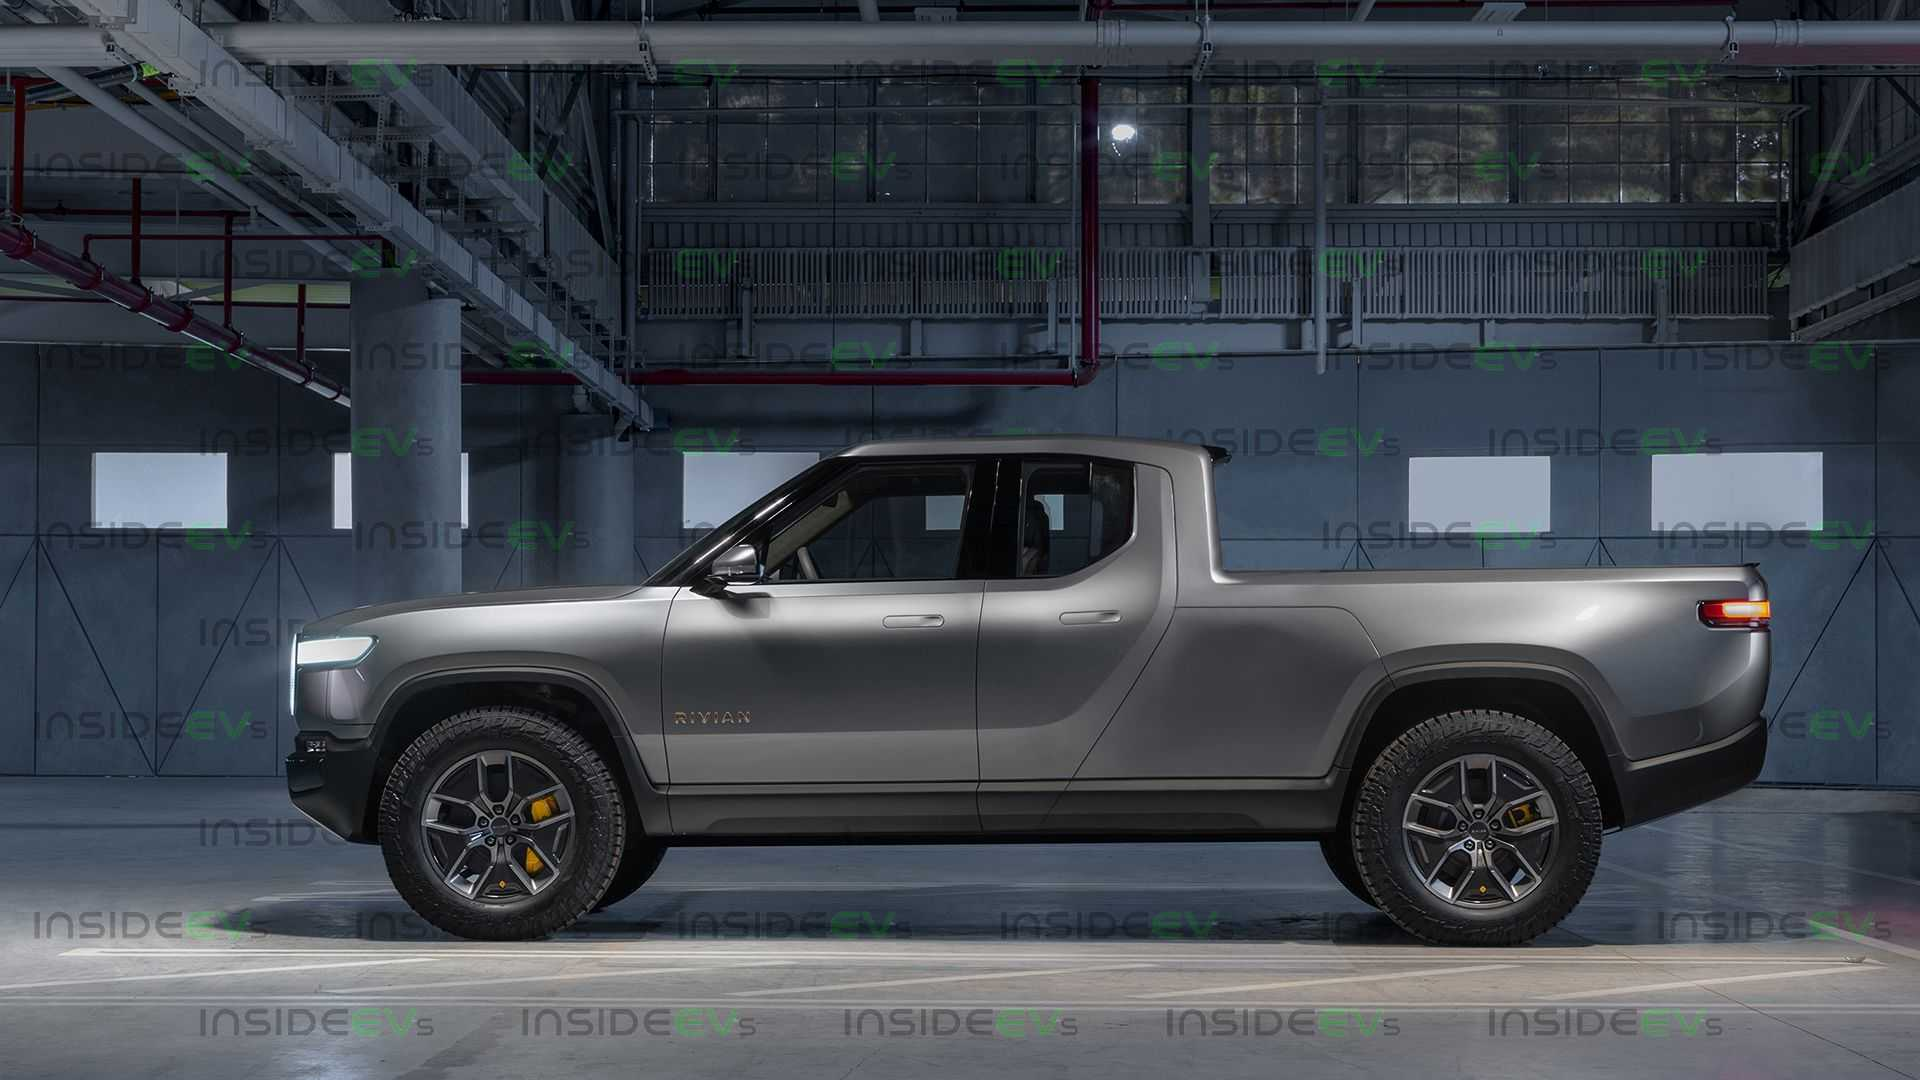 This Rivian R1T Extended Cab Long Bed Truck Rendering Looks Sleek